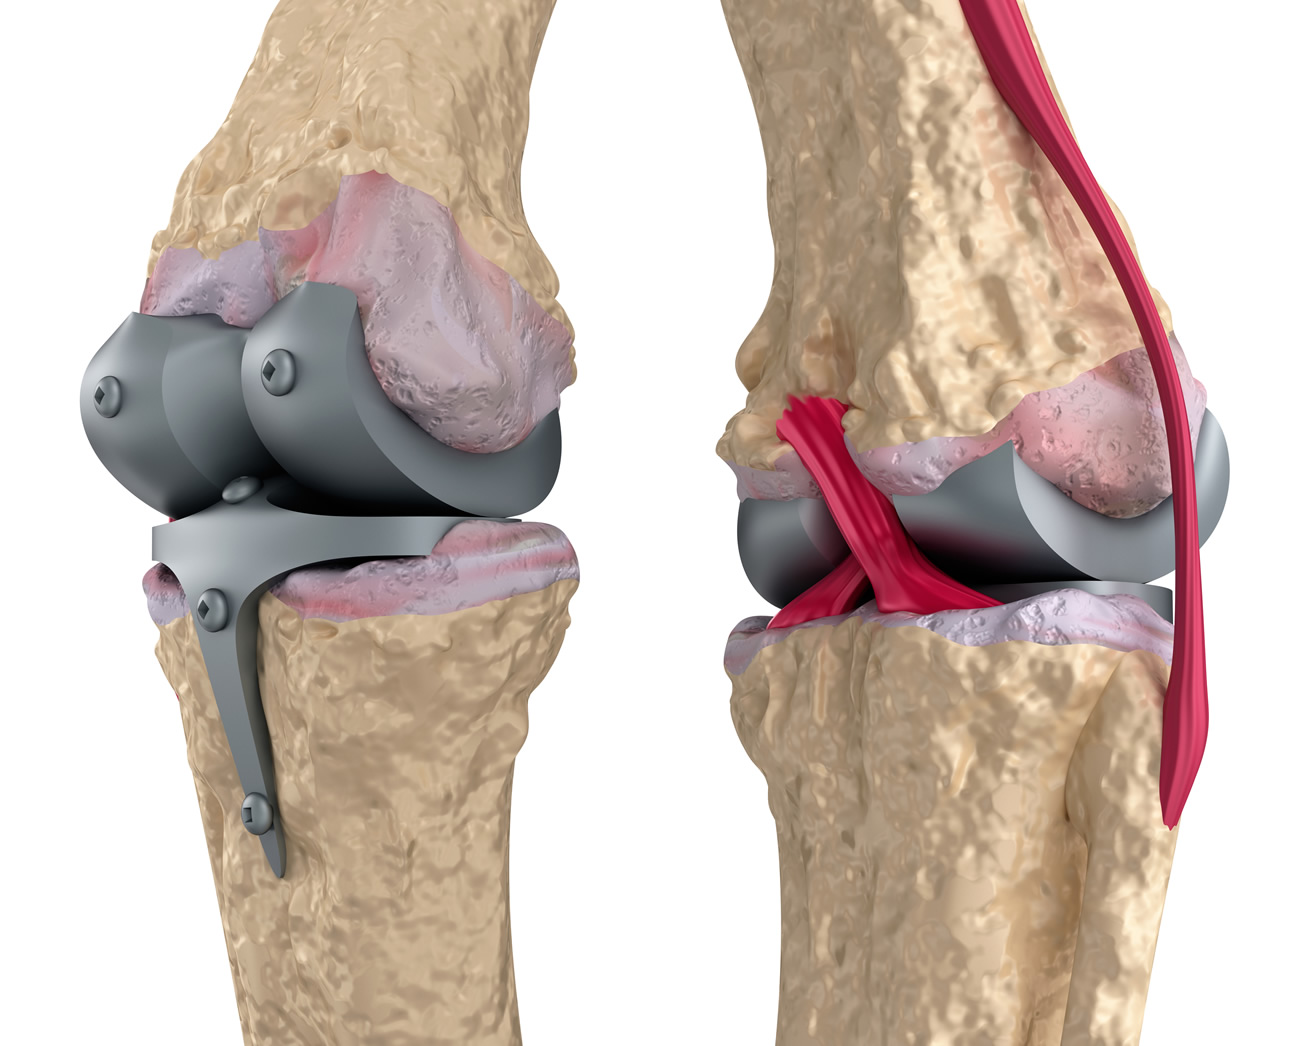 Knee Replacements